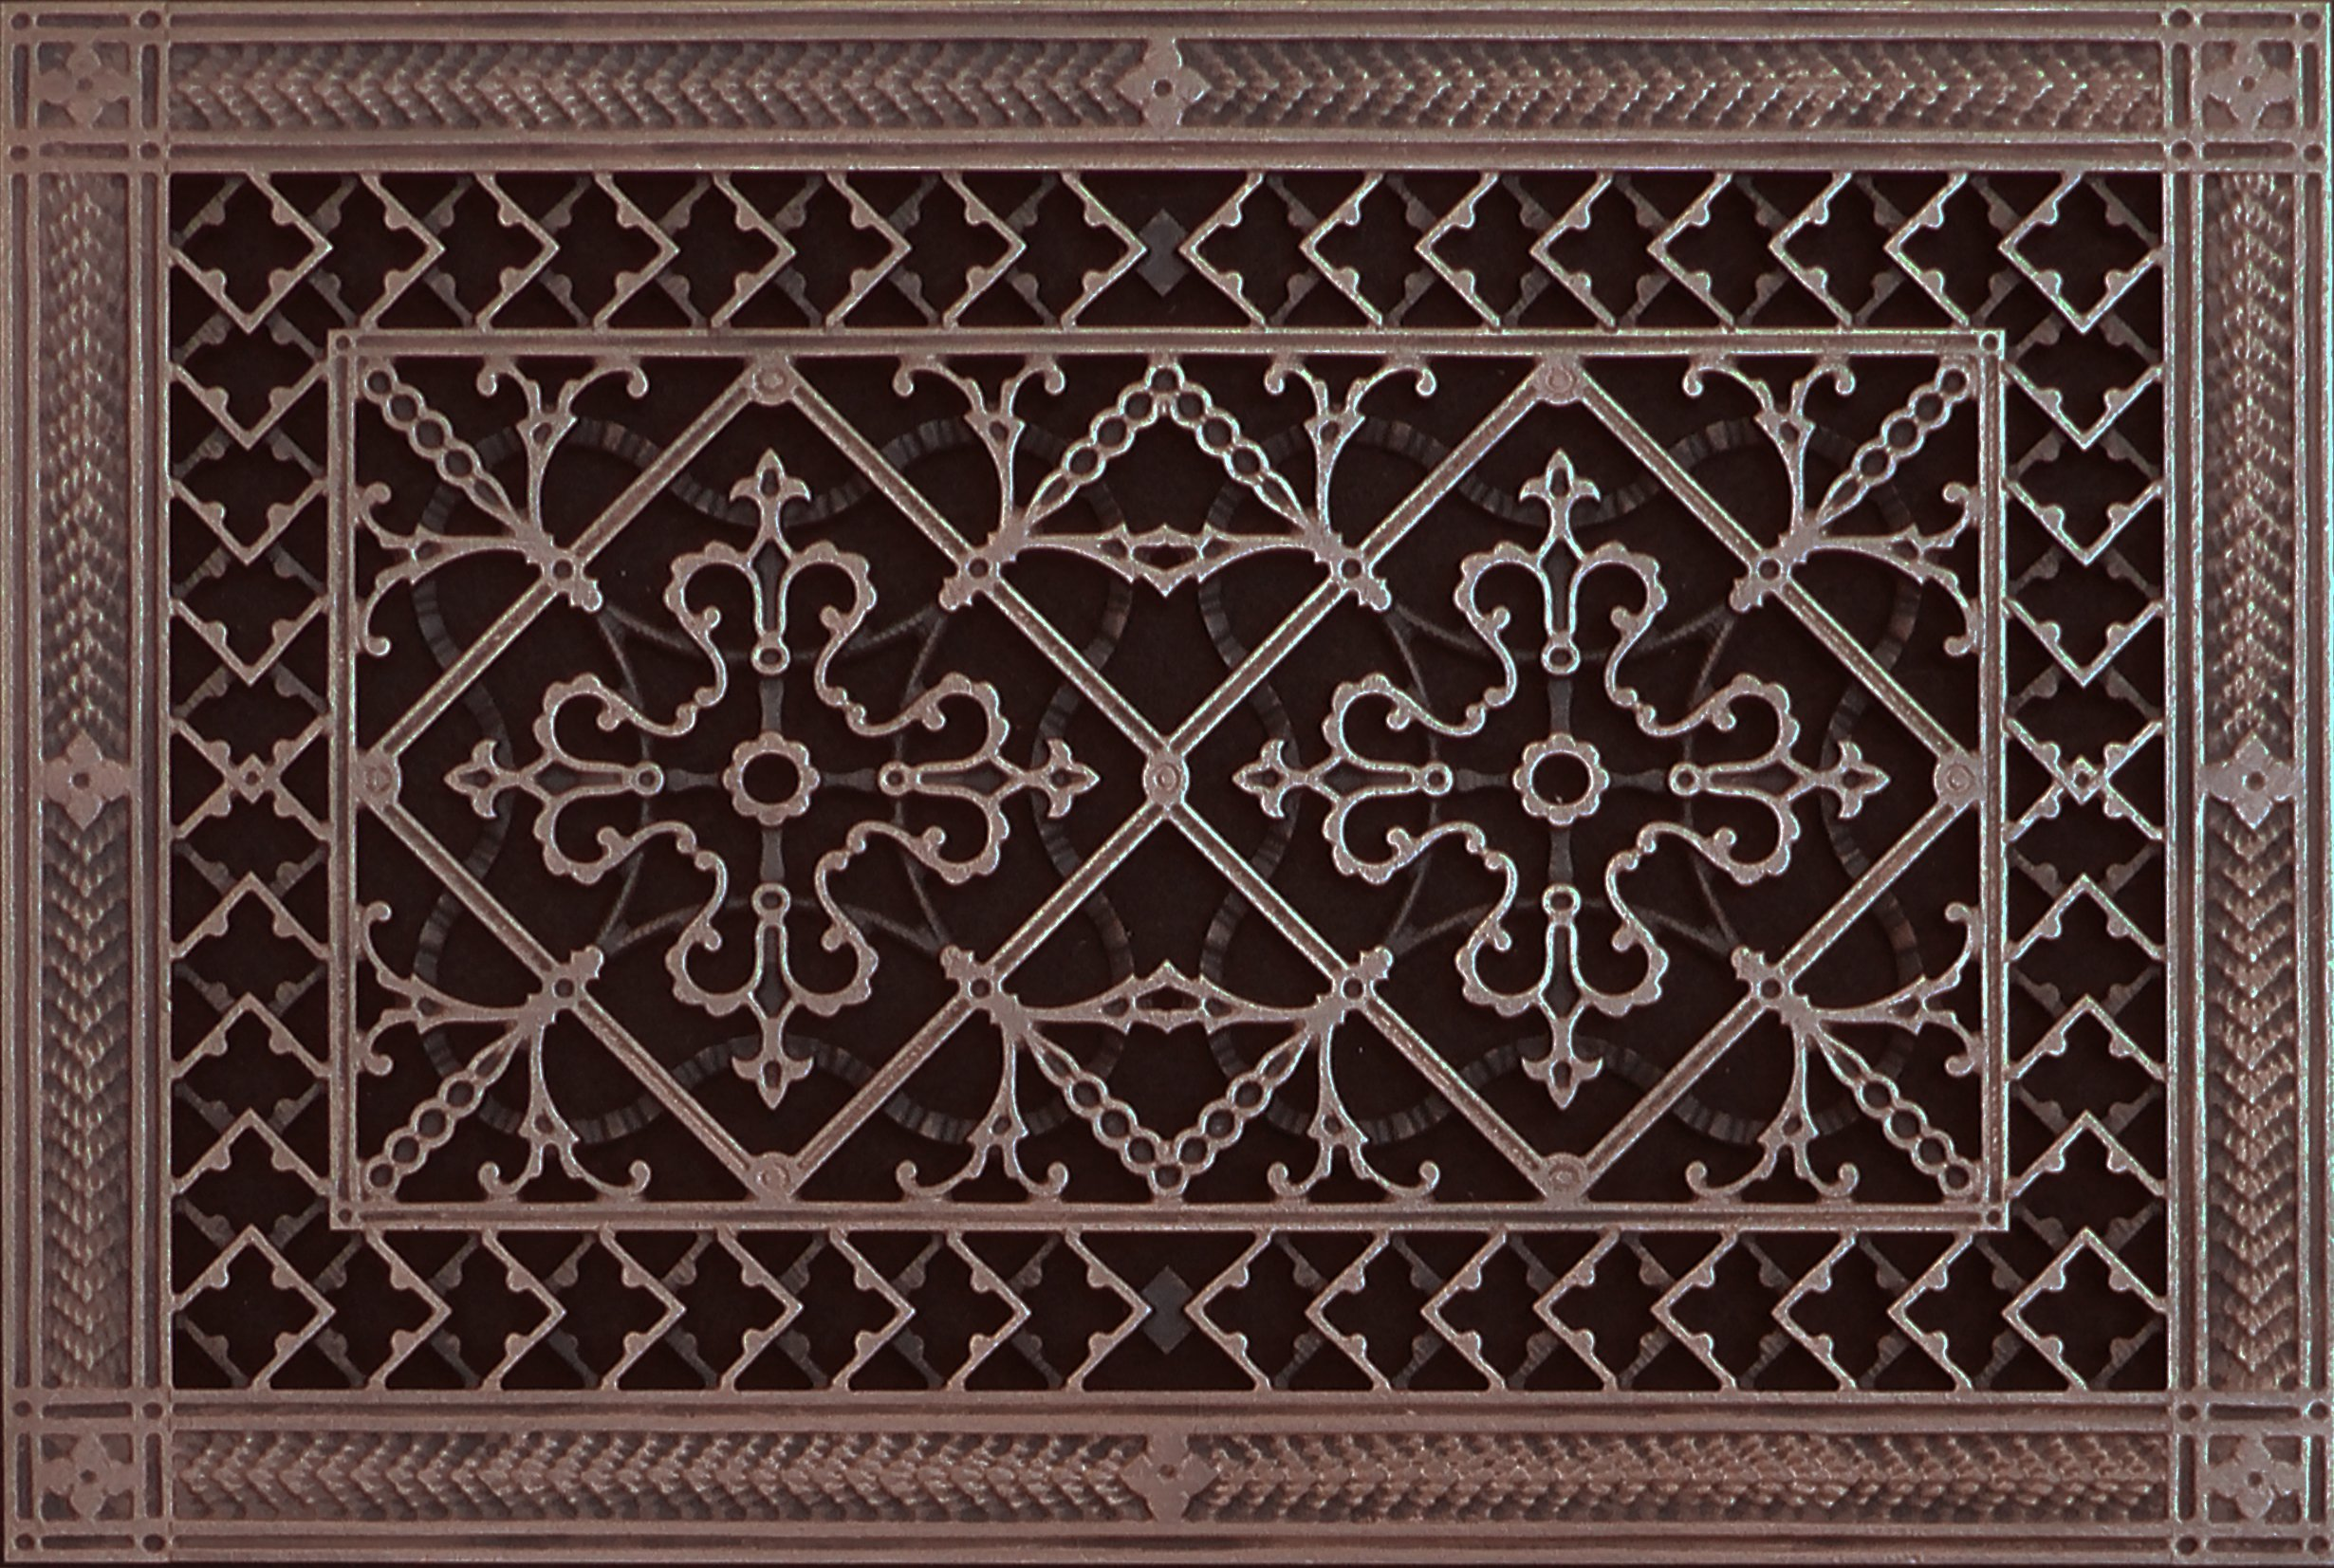 Decorative Grille, Vent Cover, or Return Register. Made of Urethane Resin to fit over a 10''x16'' duct or opening. Total size of vent is 12''x18''x3/8'', for wall and ceiling grilles (not for floor use).